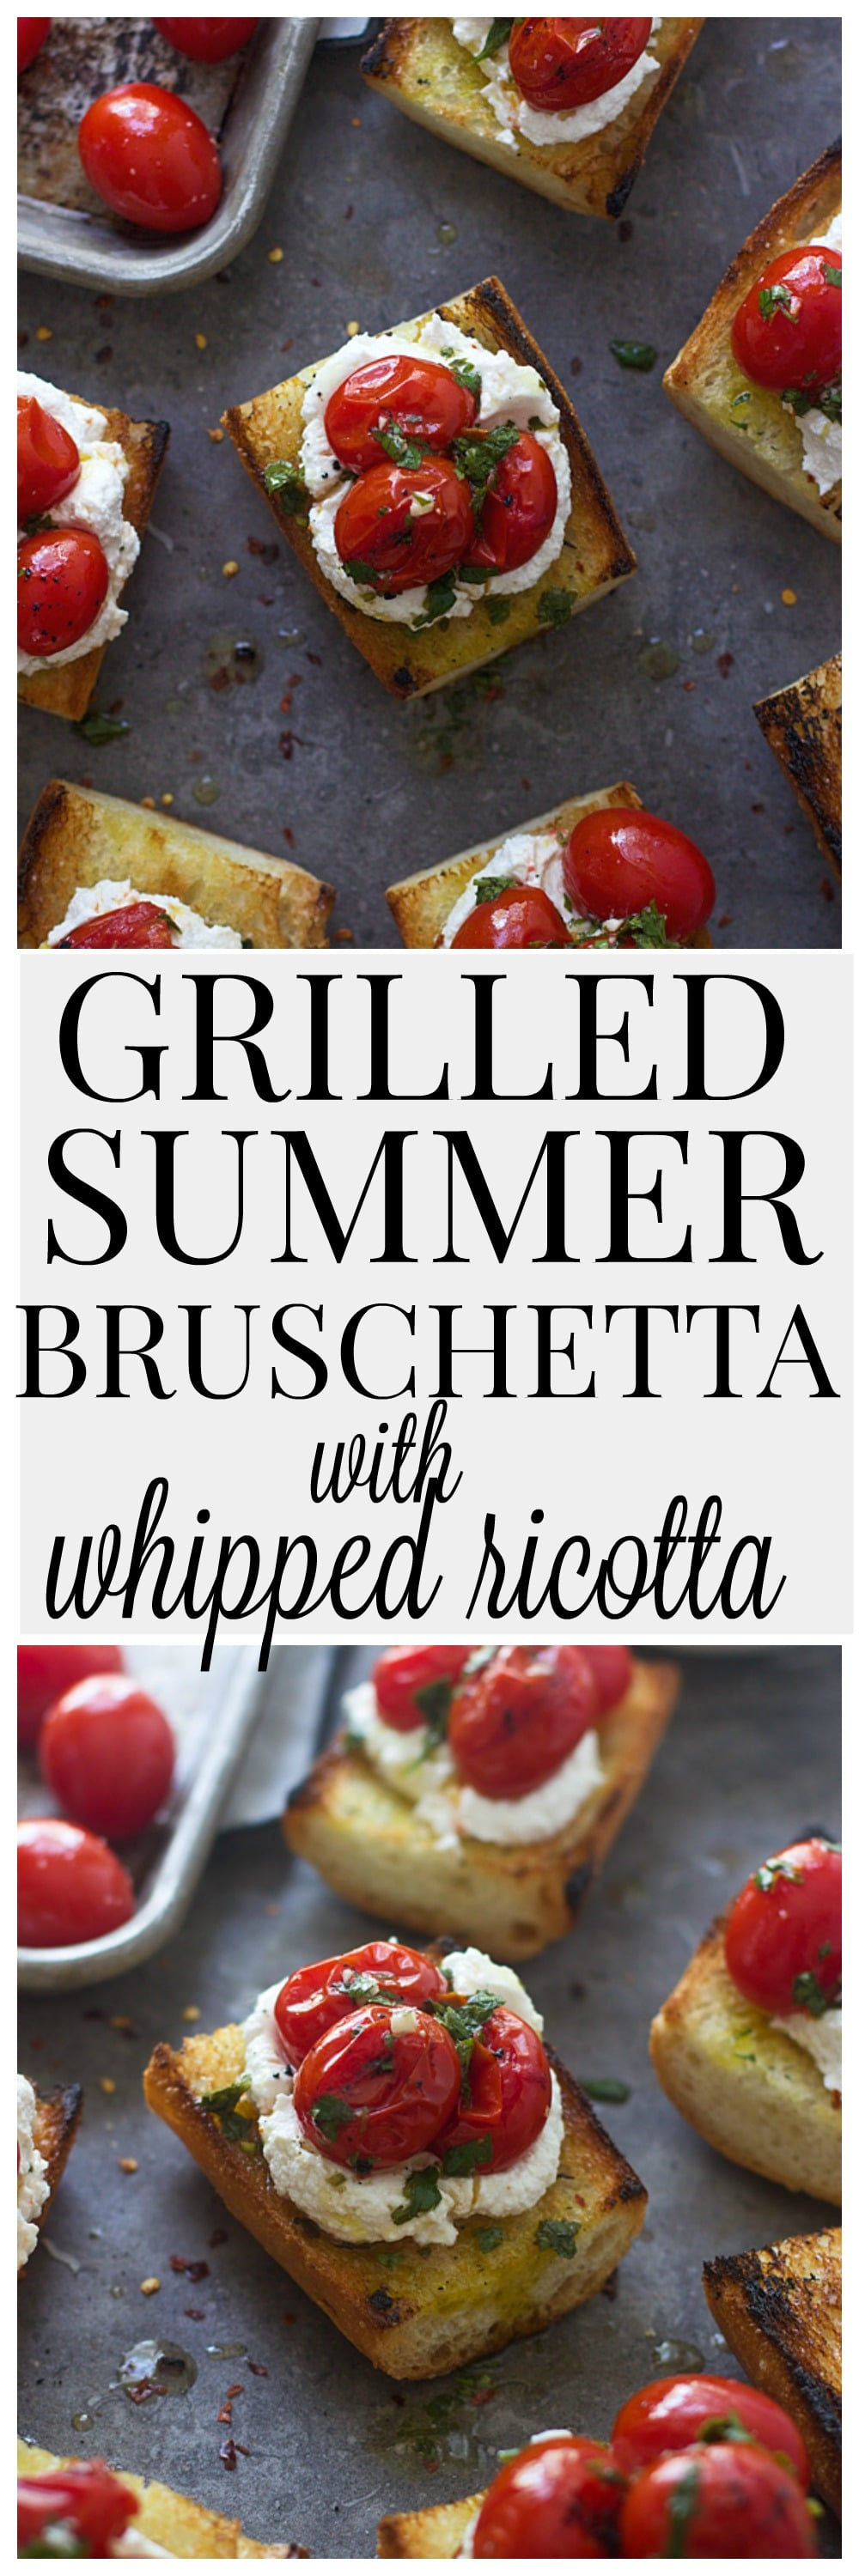 Grilled Summer Bruschetta with Whipped Ricotta